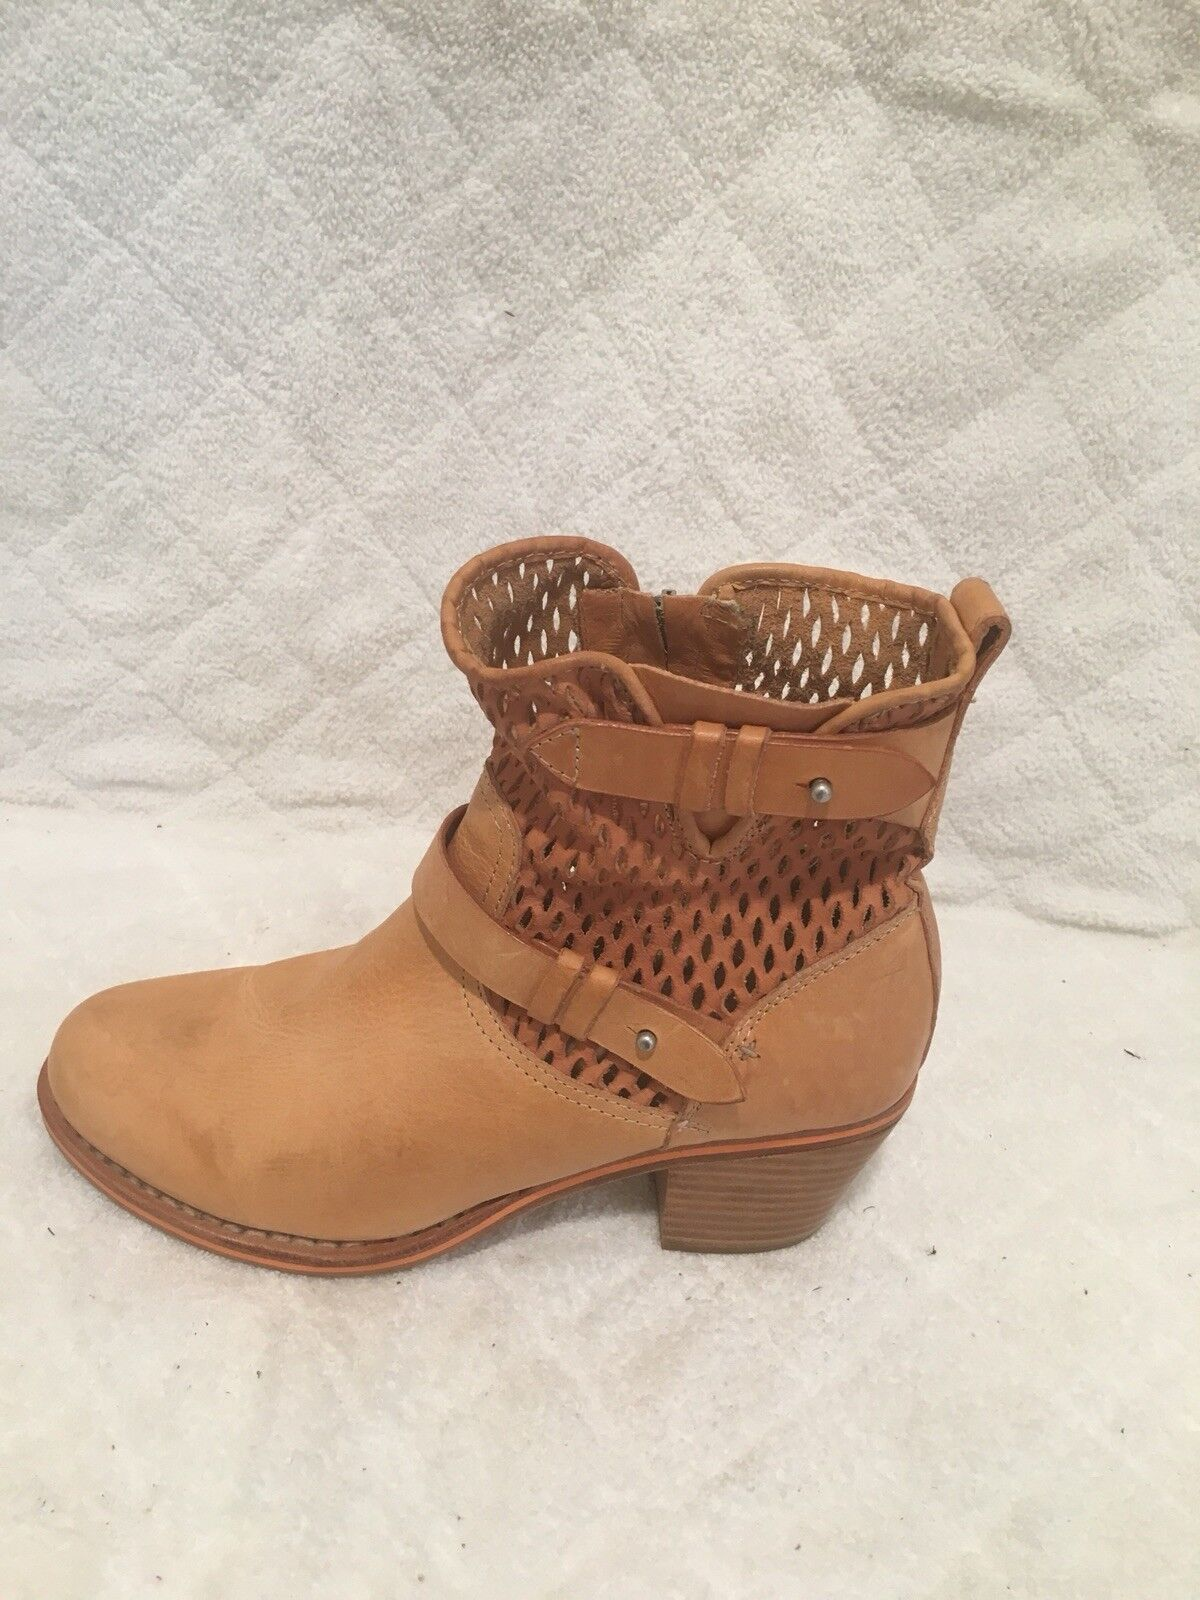 RAG & BONE TAN LETHER ANKLE BOOTS ZIPPER SIDE SIZE 38 HAND MADE SHOES